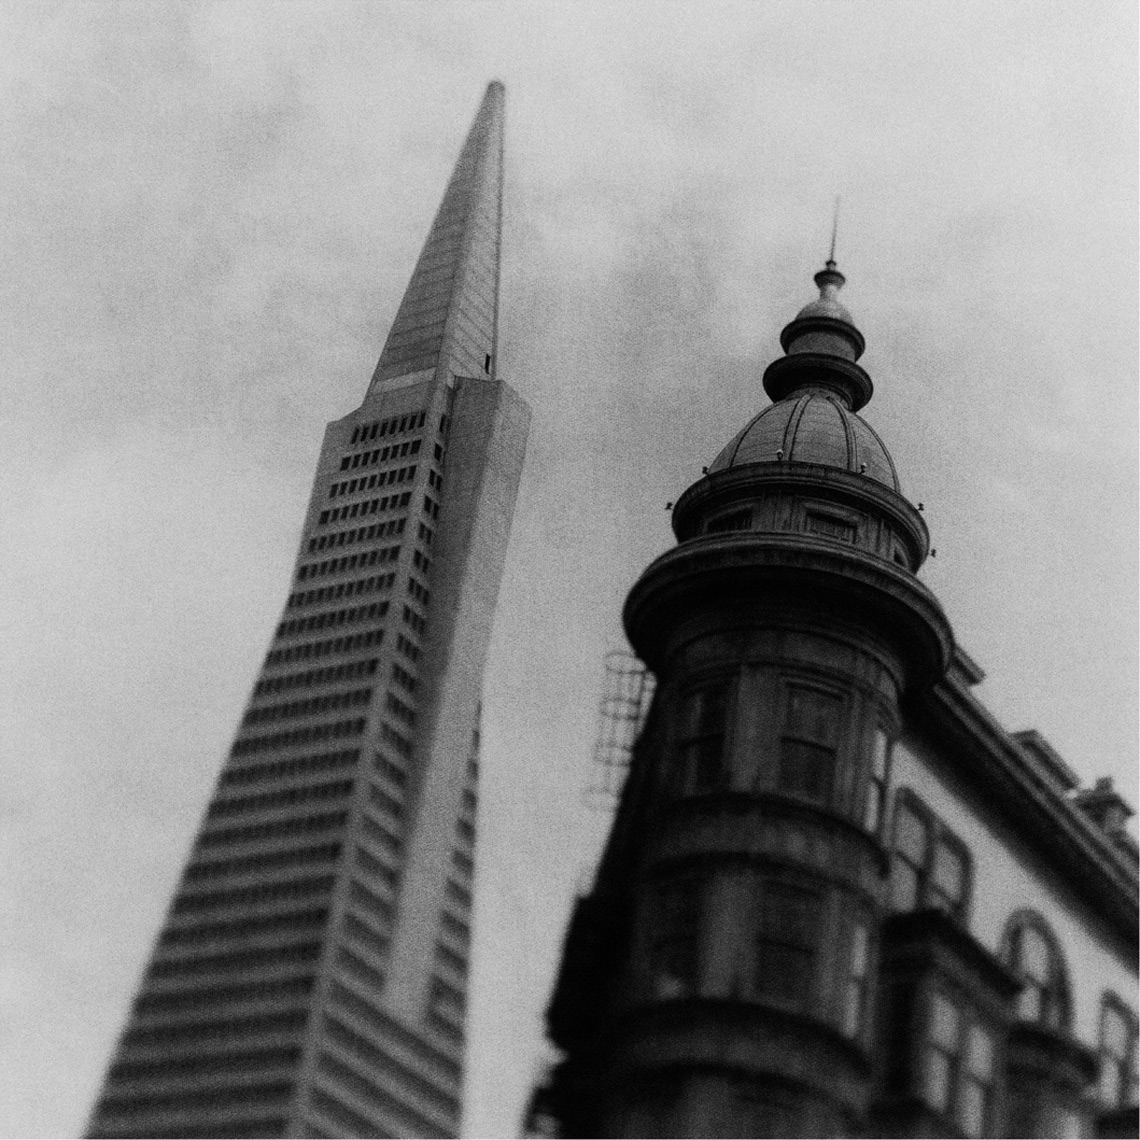 123_SF_transamerica_day_gs_urbanDigital